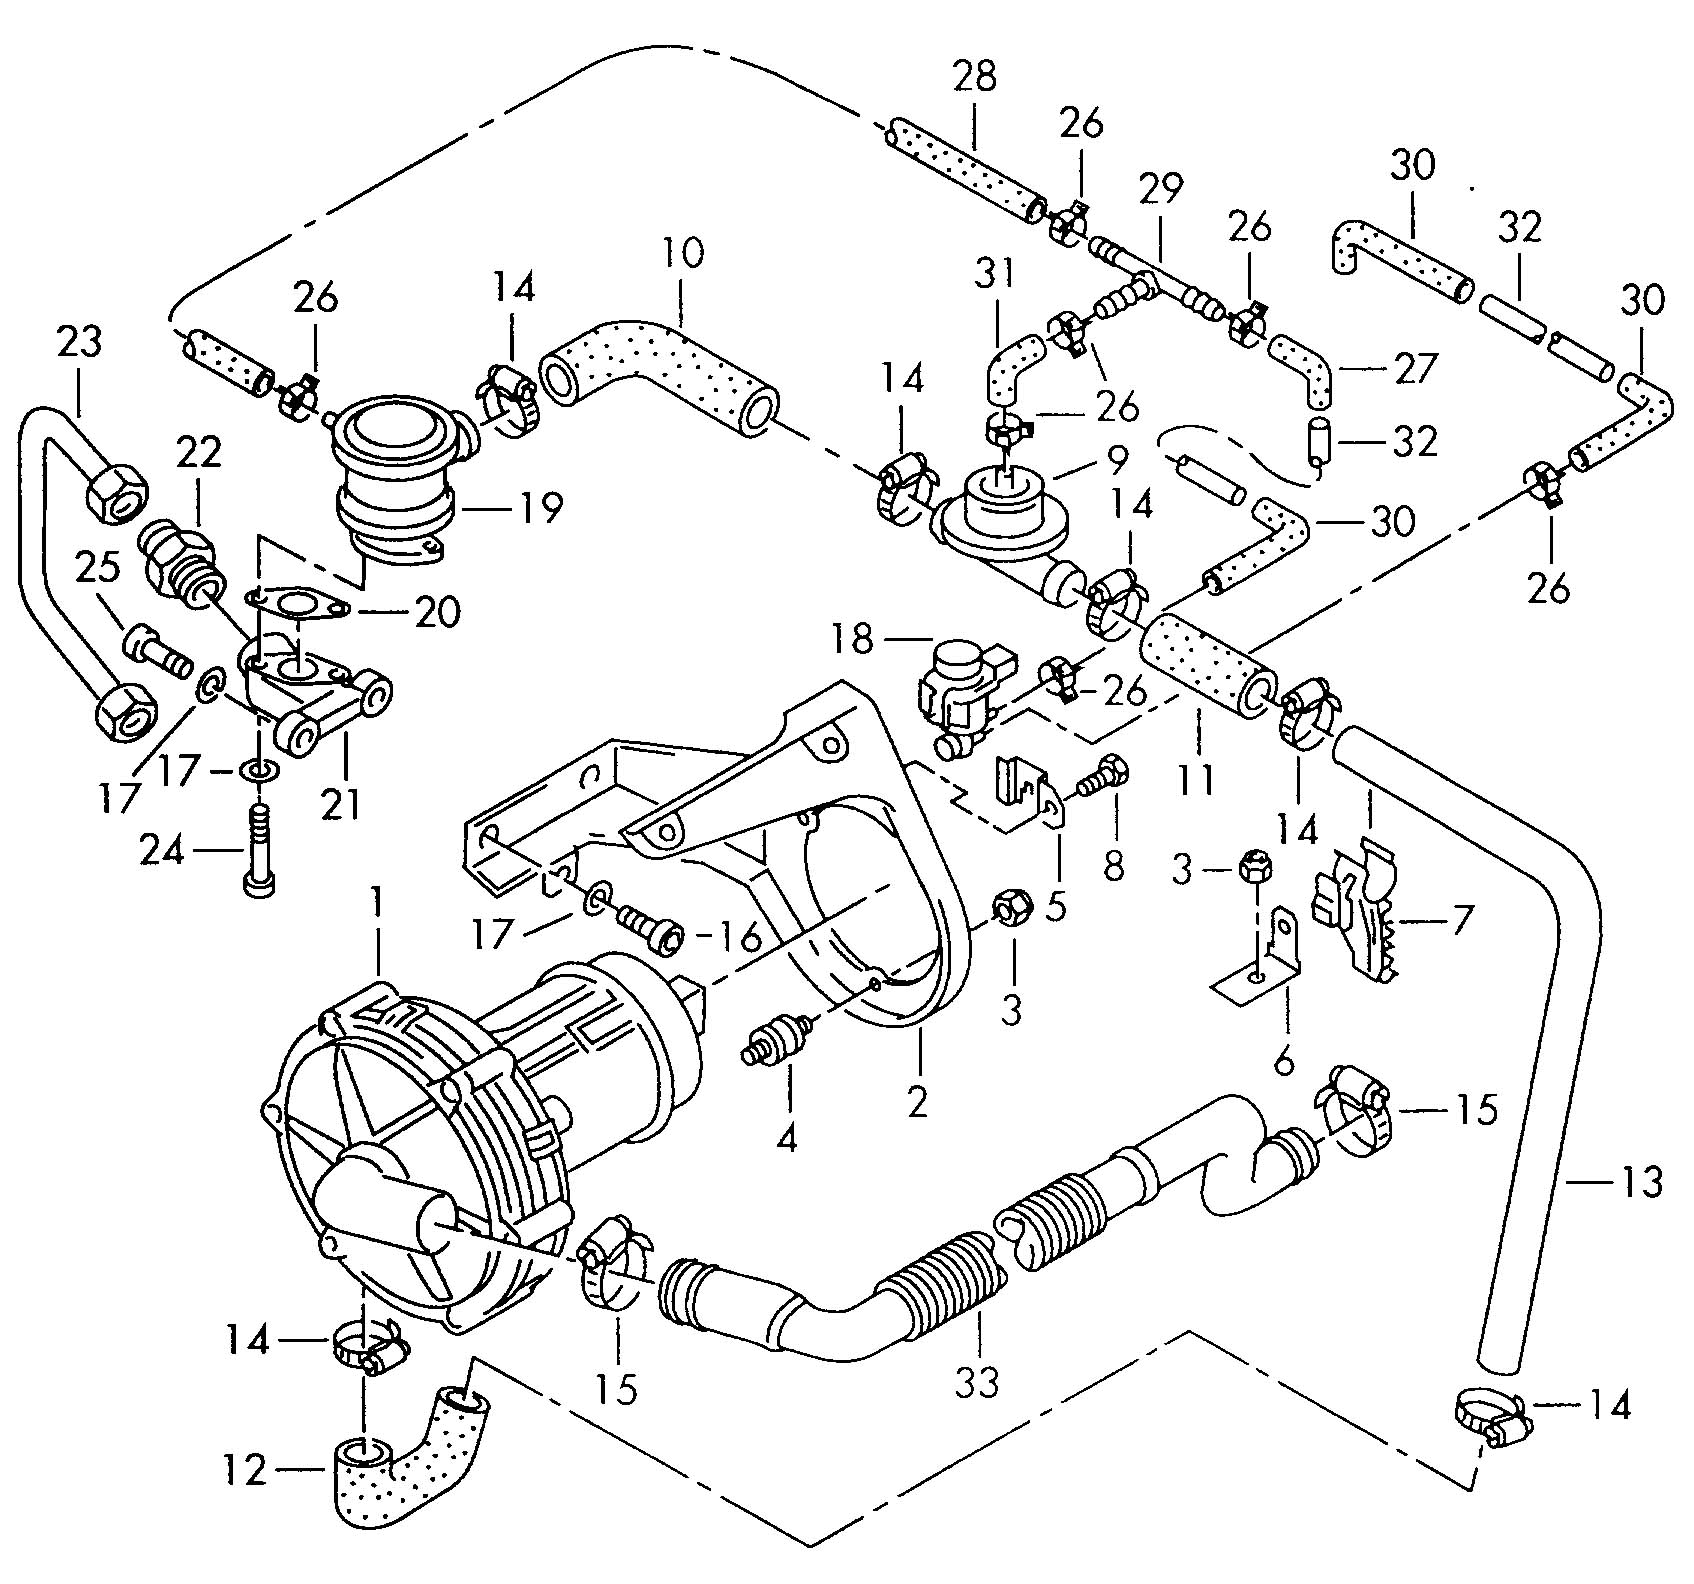 volkswagen 2002 cabrio 2 0 engine diagram